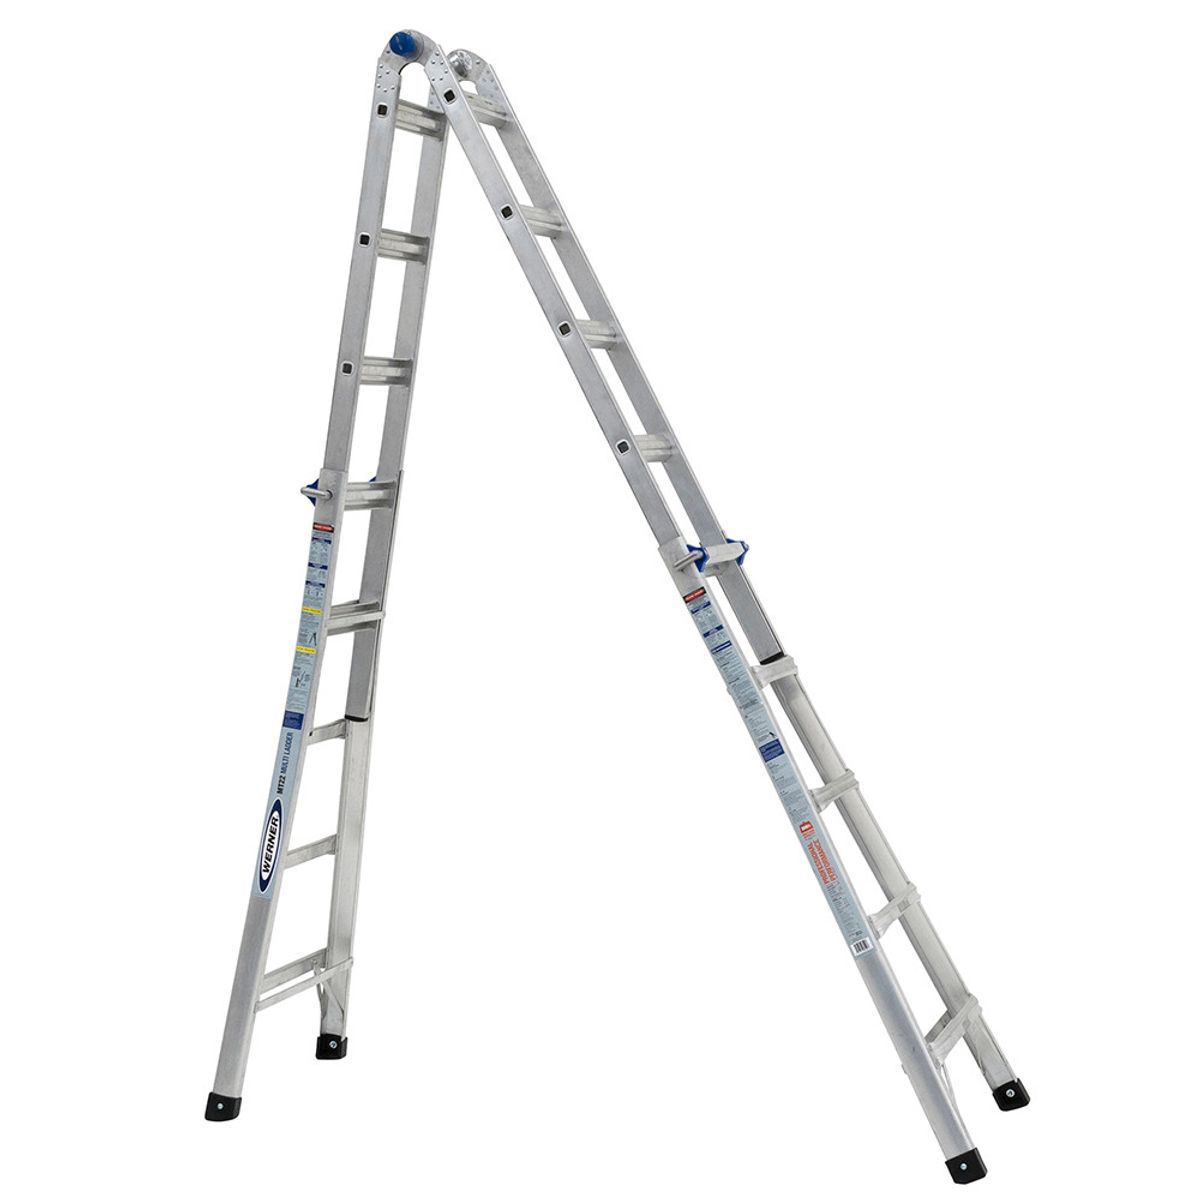 Mt 22 Multi Purpose Ladders Werner Us